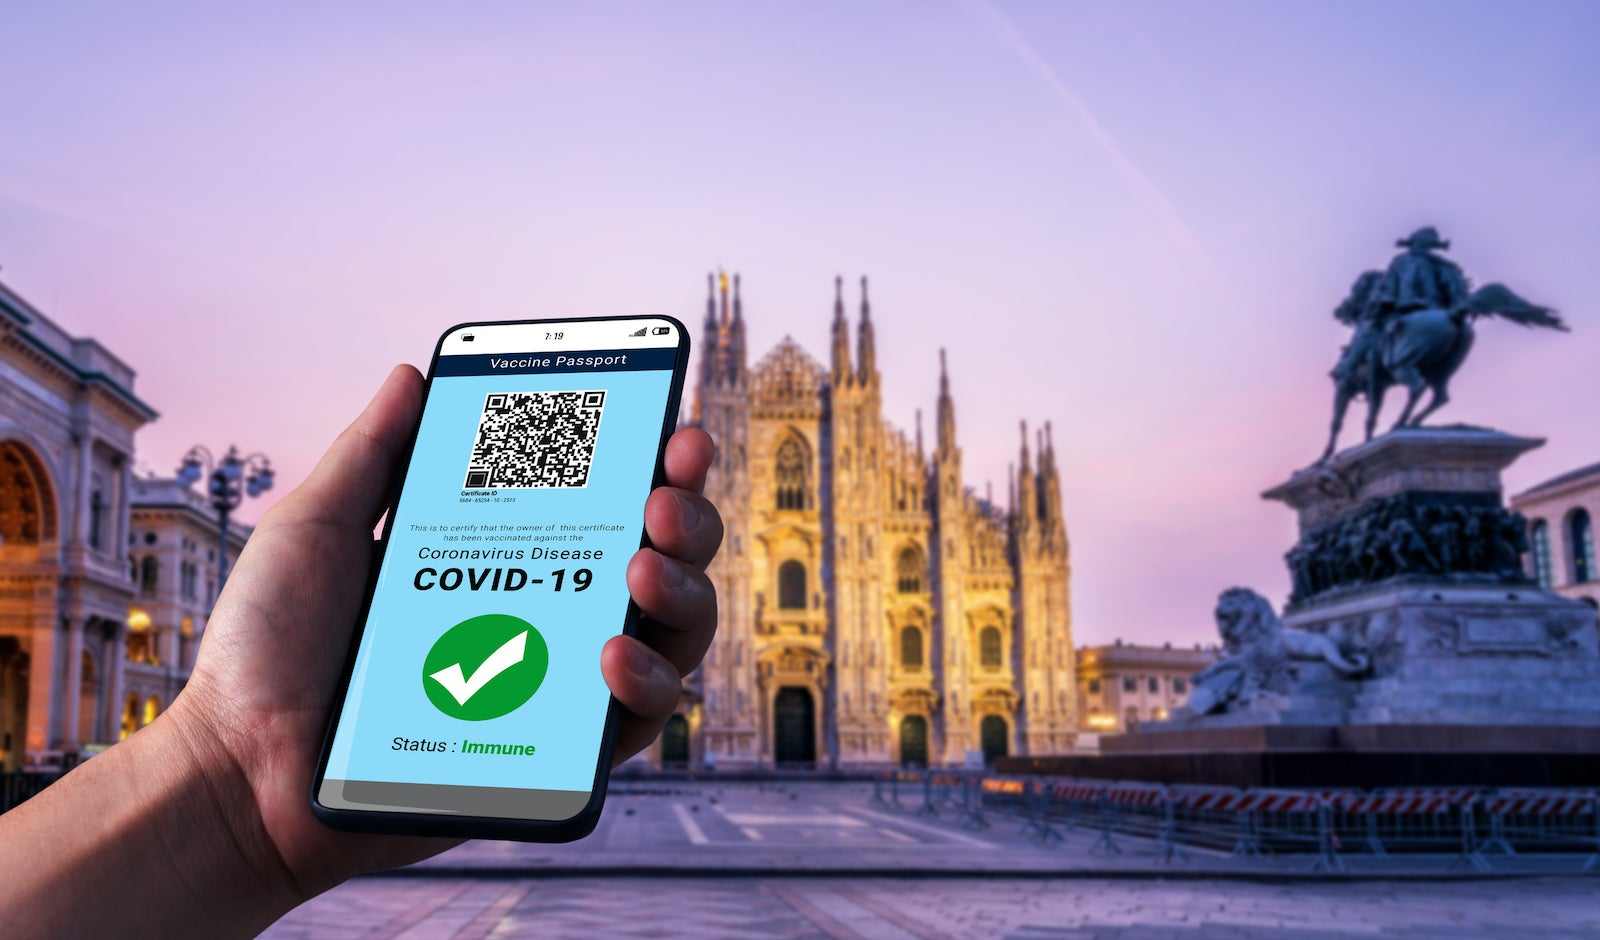 Italy to mandate COVID vaccine pass for entry to museums, theaters and restaurants - The Points Guy